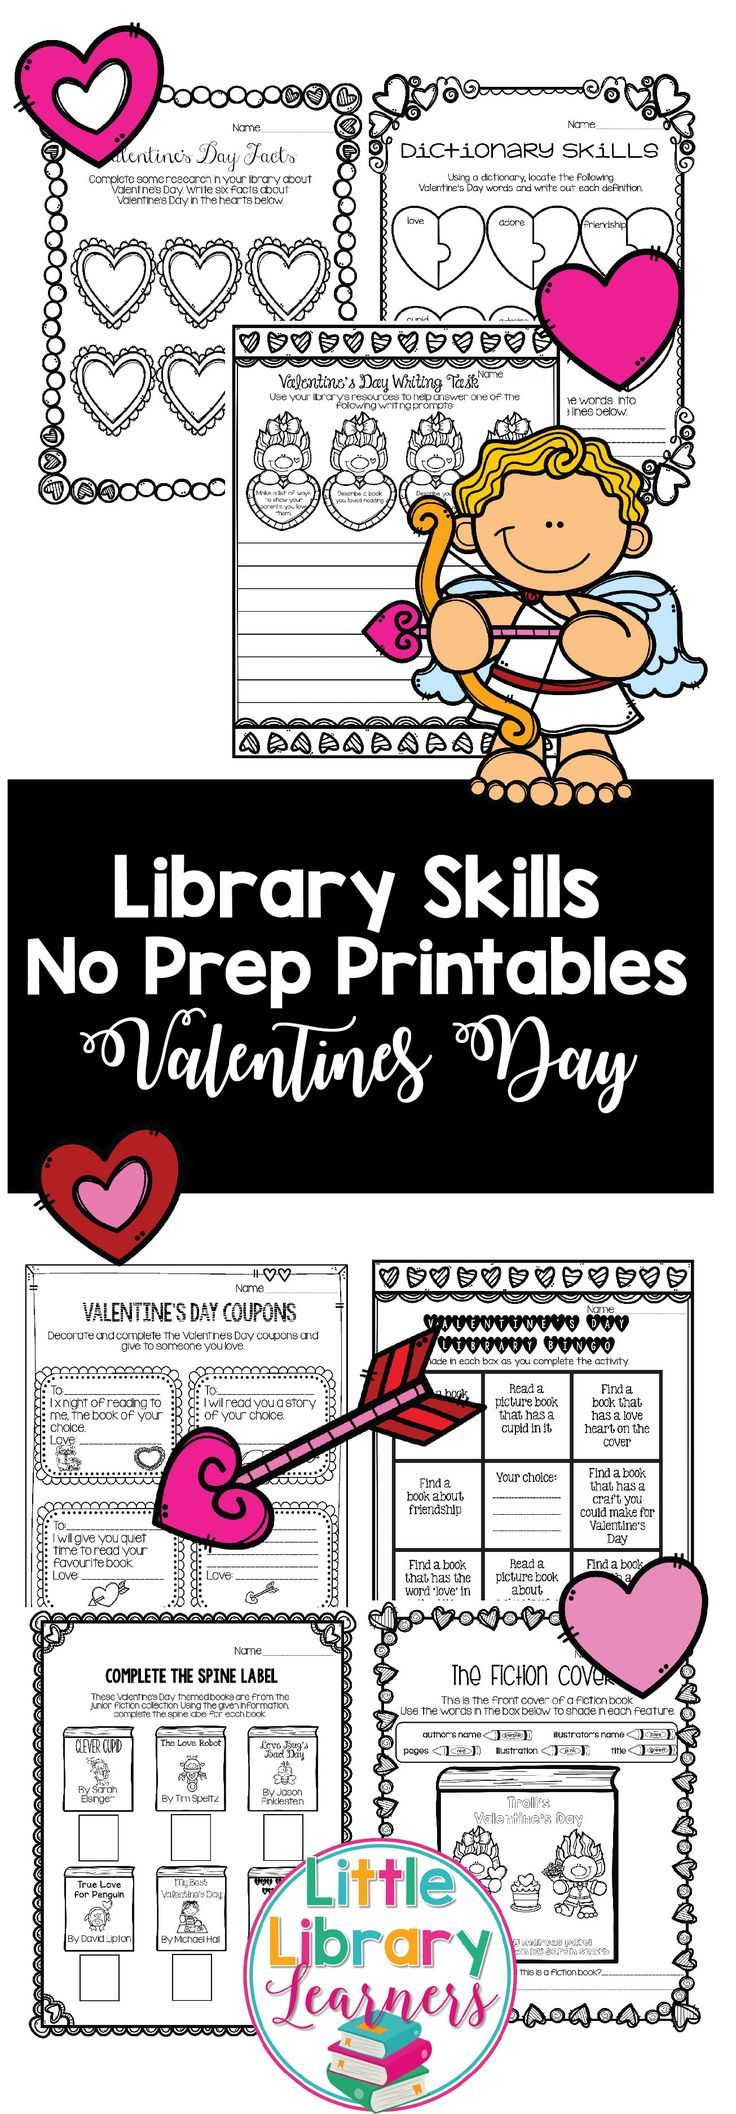 This Library Valentine's Day themed resource is perfect to teach your students library skills with a fun Valentine's Day theme! Library skills activities include information location, research, writing skills, fiction and non-fiction and more!